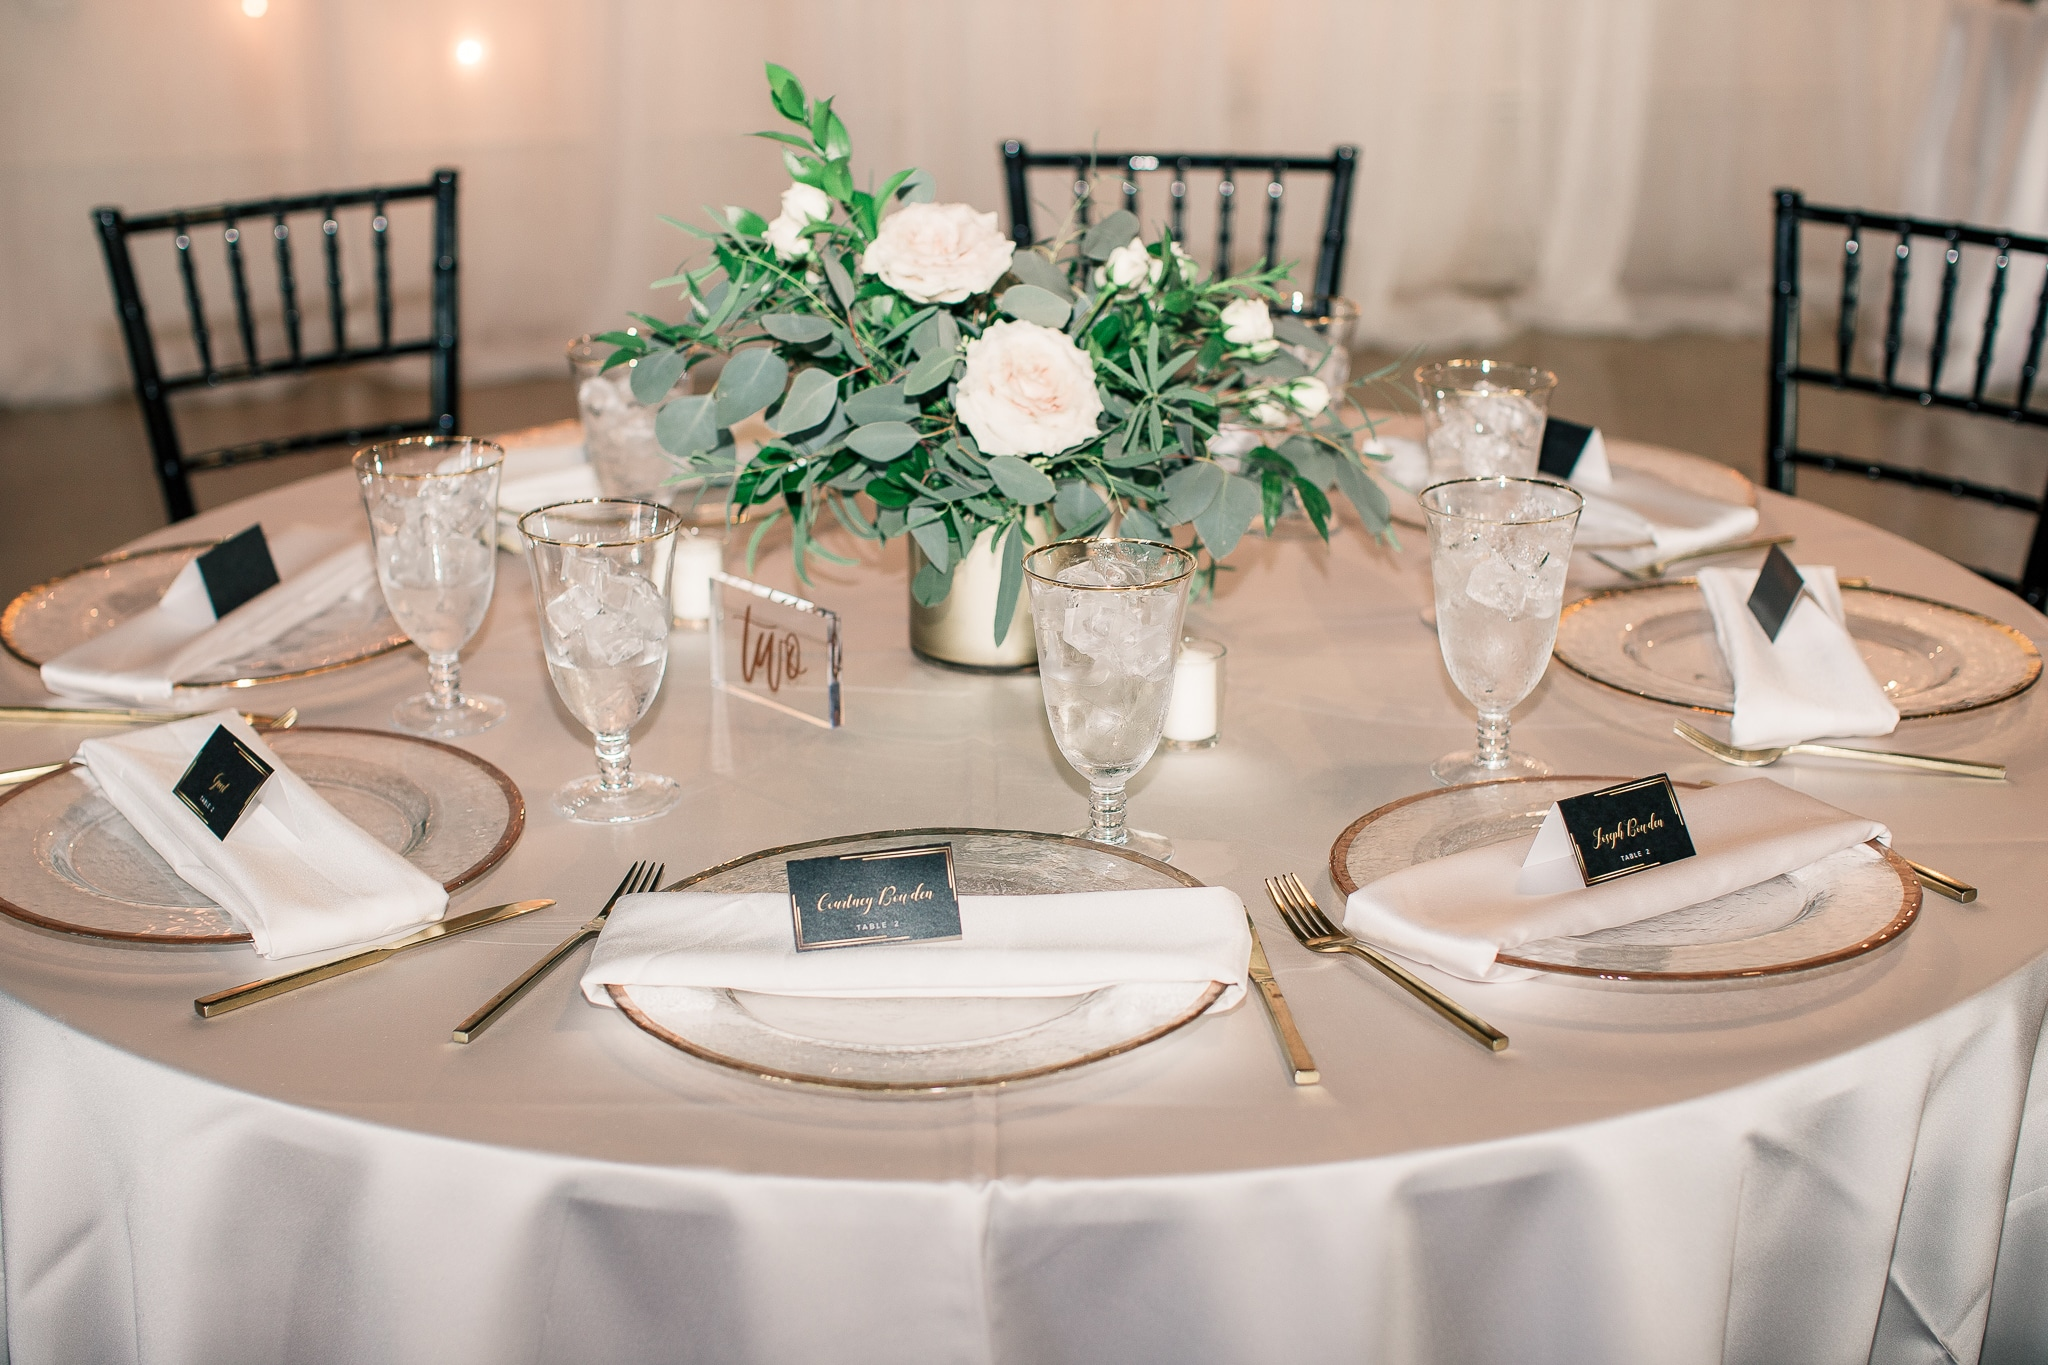 Kiss of Perfection, table with greens and white place setting